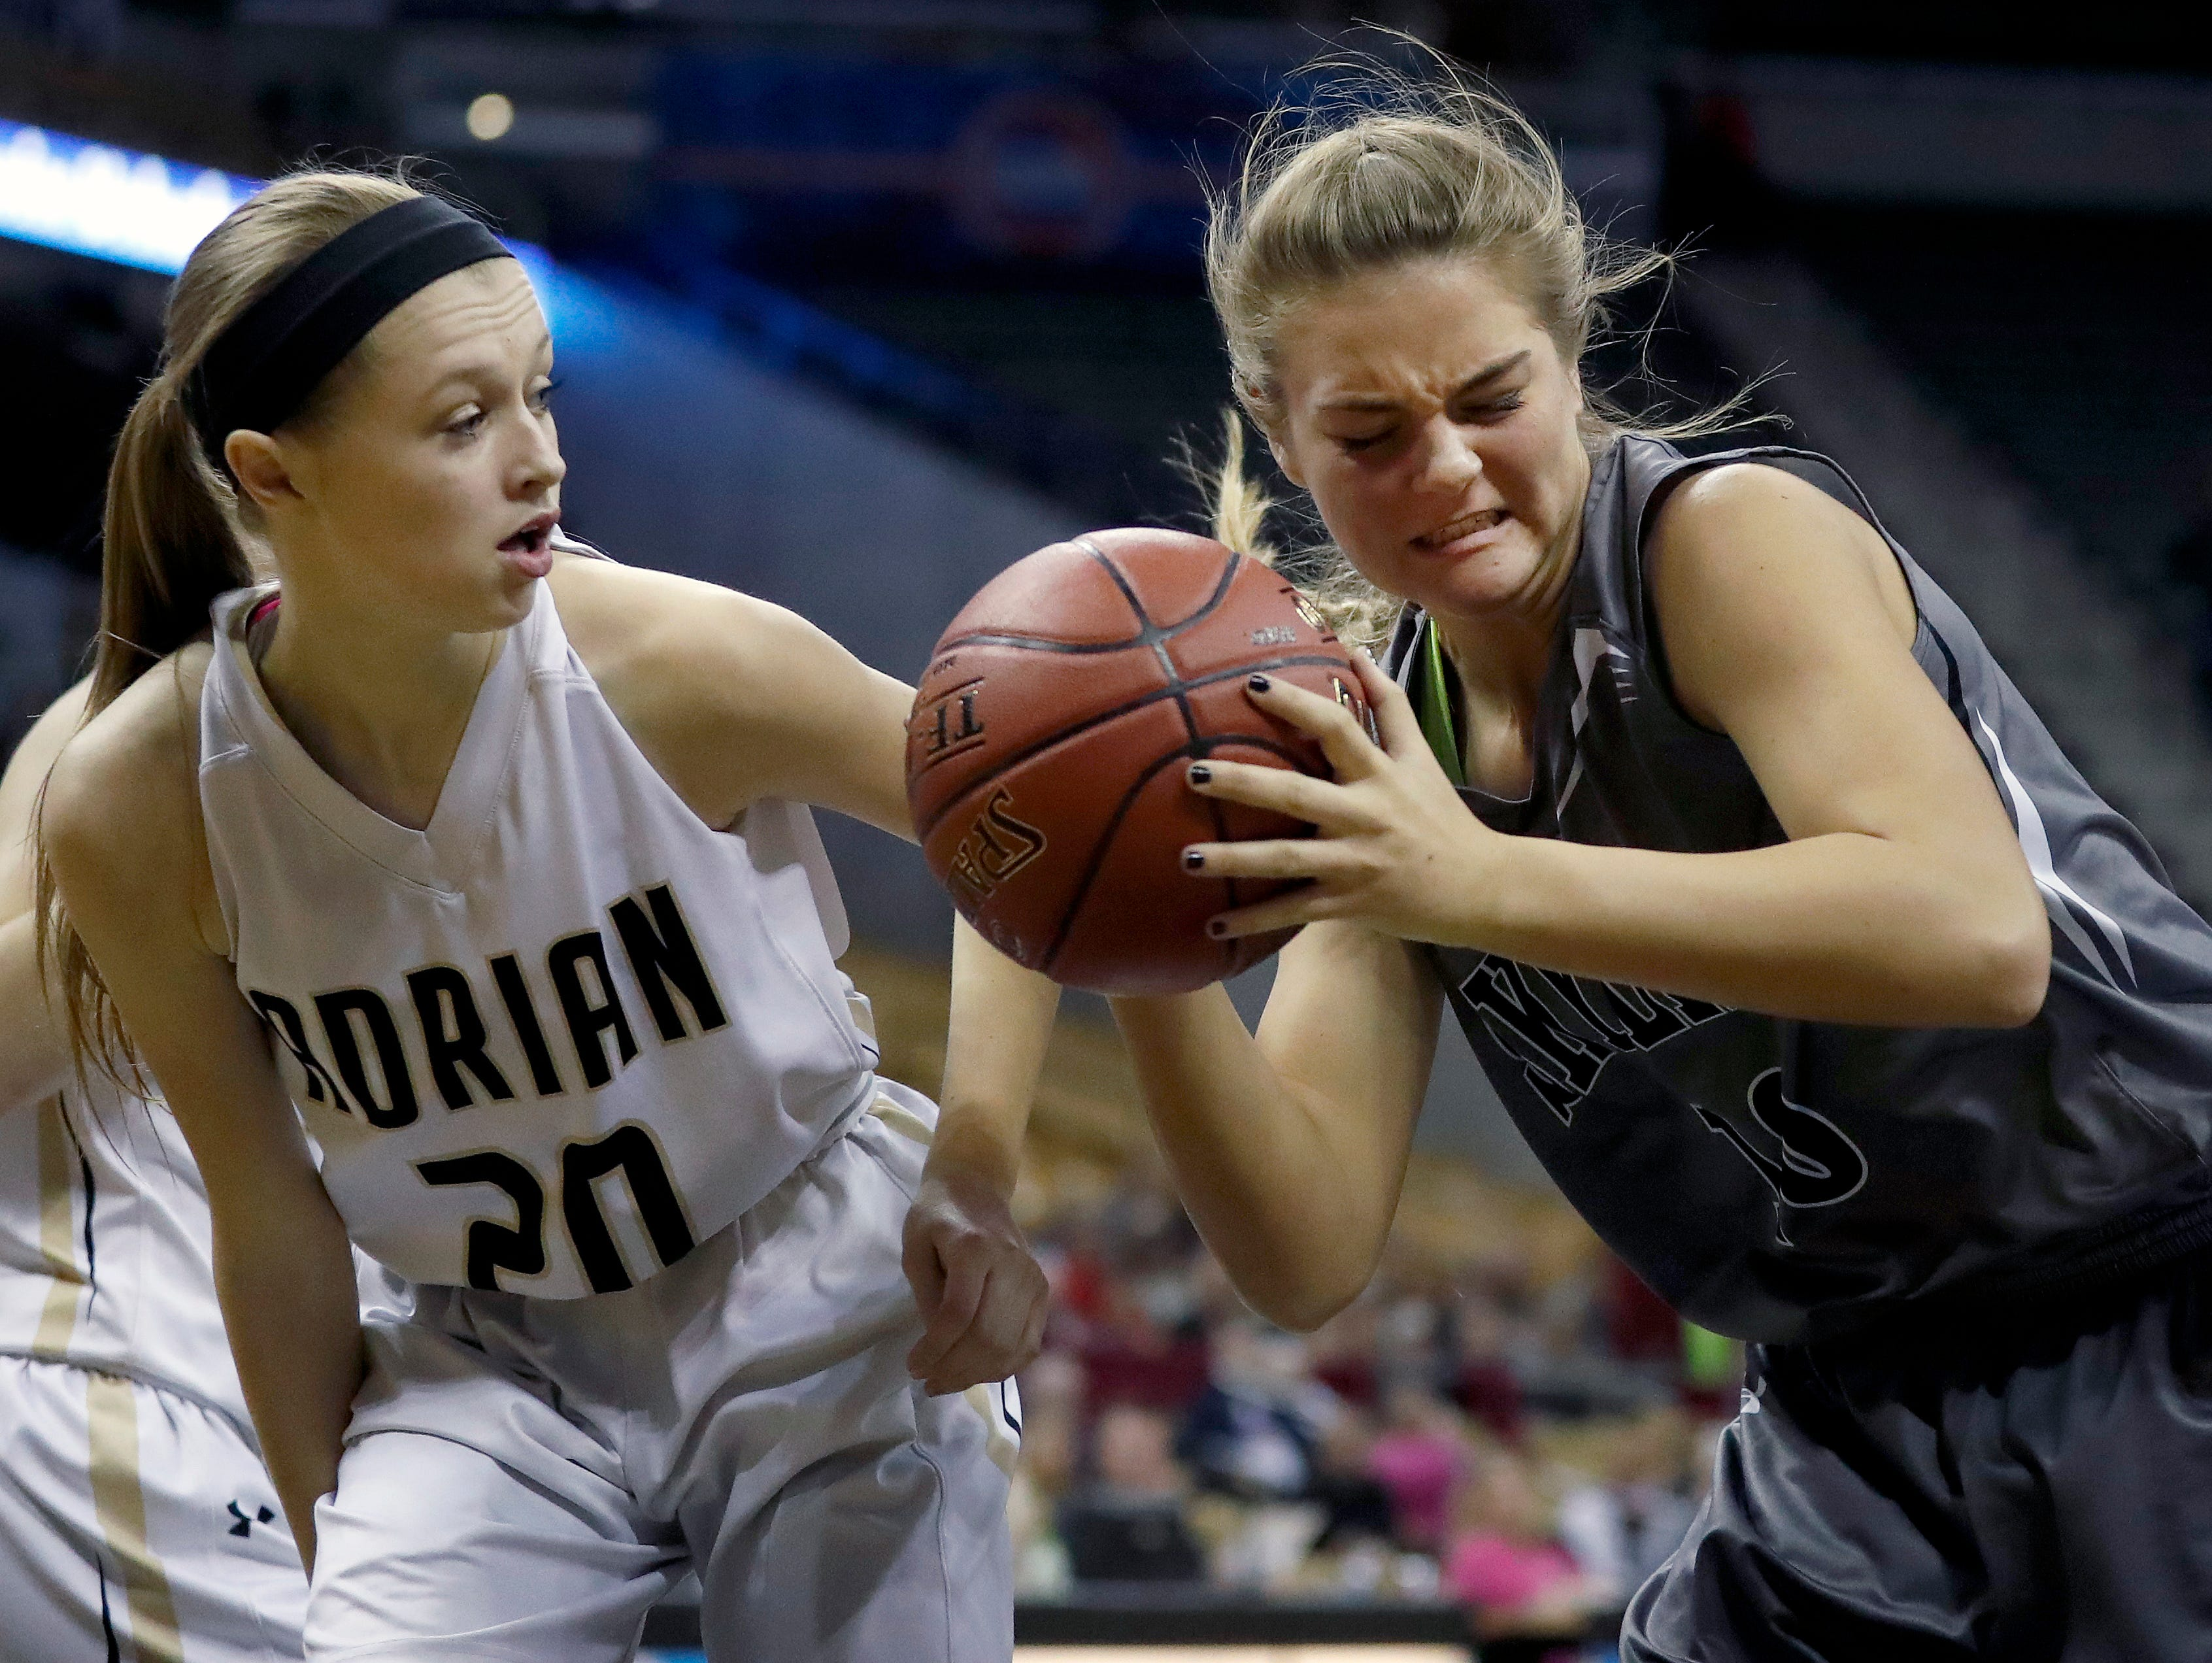 Skyline's Savannah Owen, right, holds the ball as Adrain's Kerigan Wimsatt watches during the first half of the Missouri Class 2 girls high school championship basketball game Saturday, March 11, 2017, in Columbia, Mo. (AP Photo/Jeff Roberson)